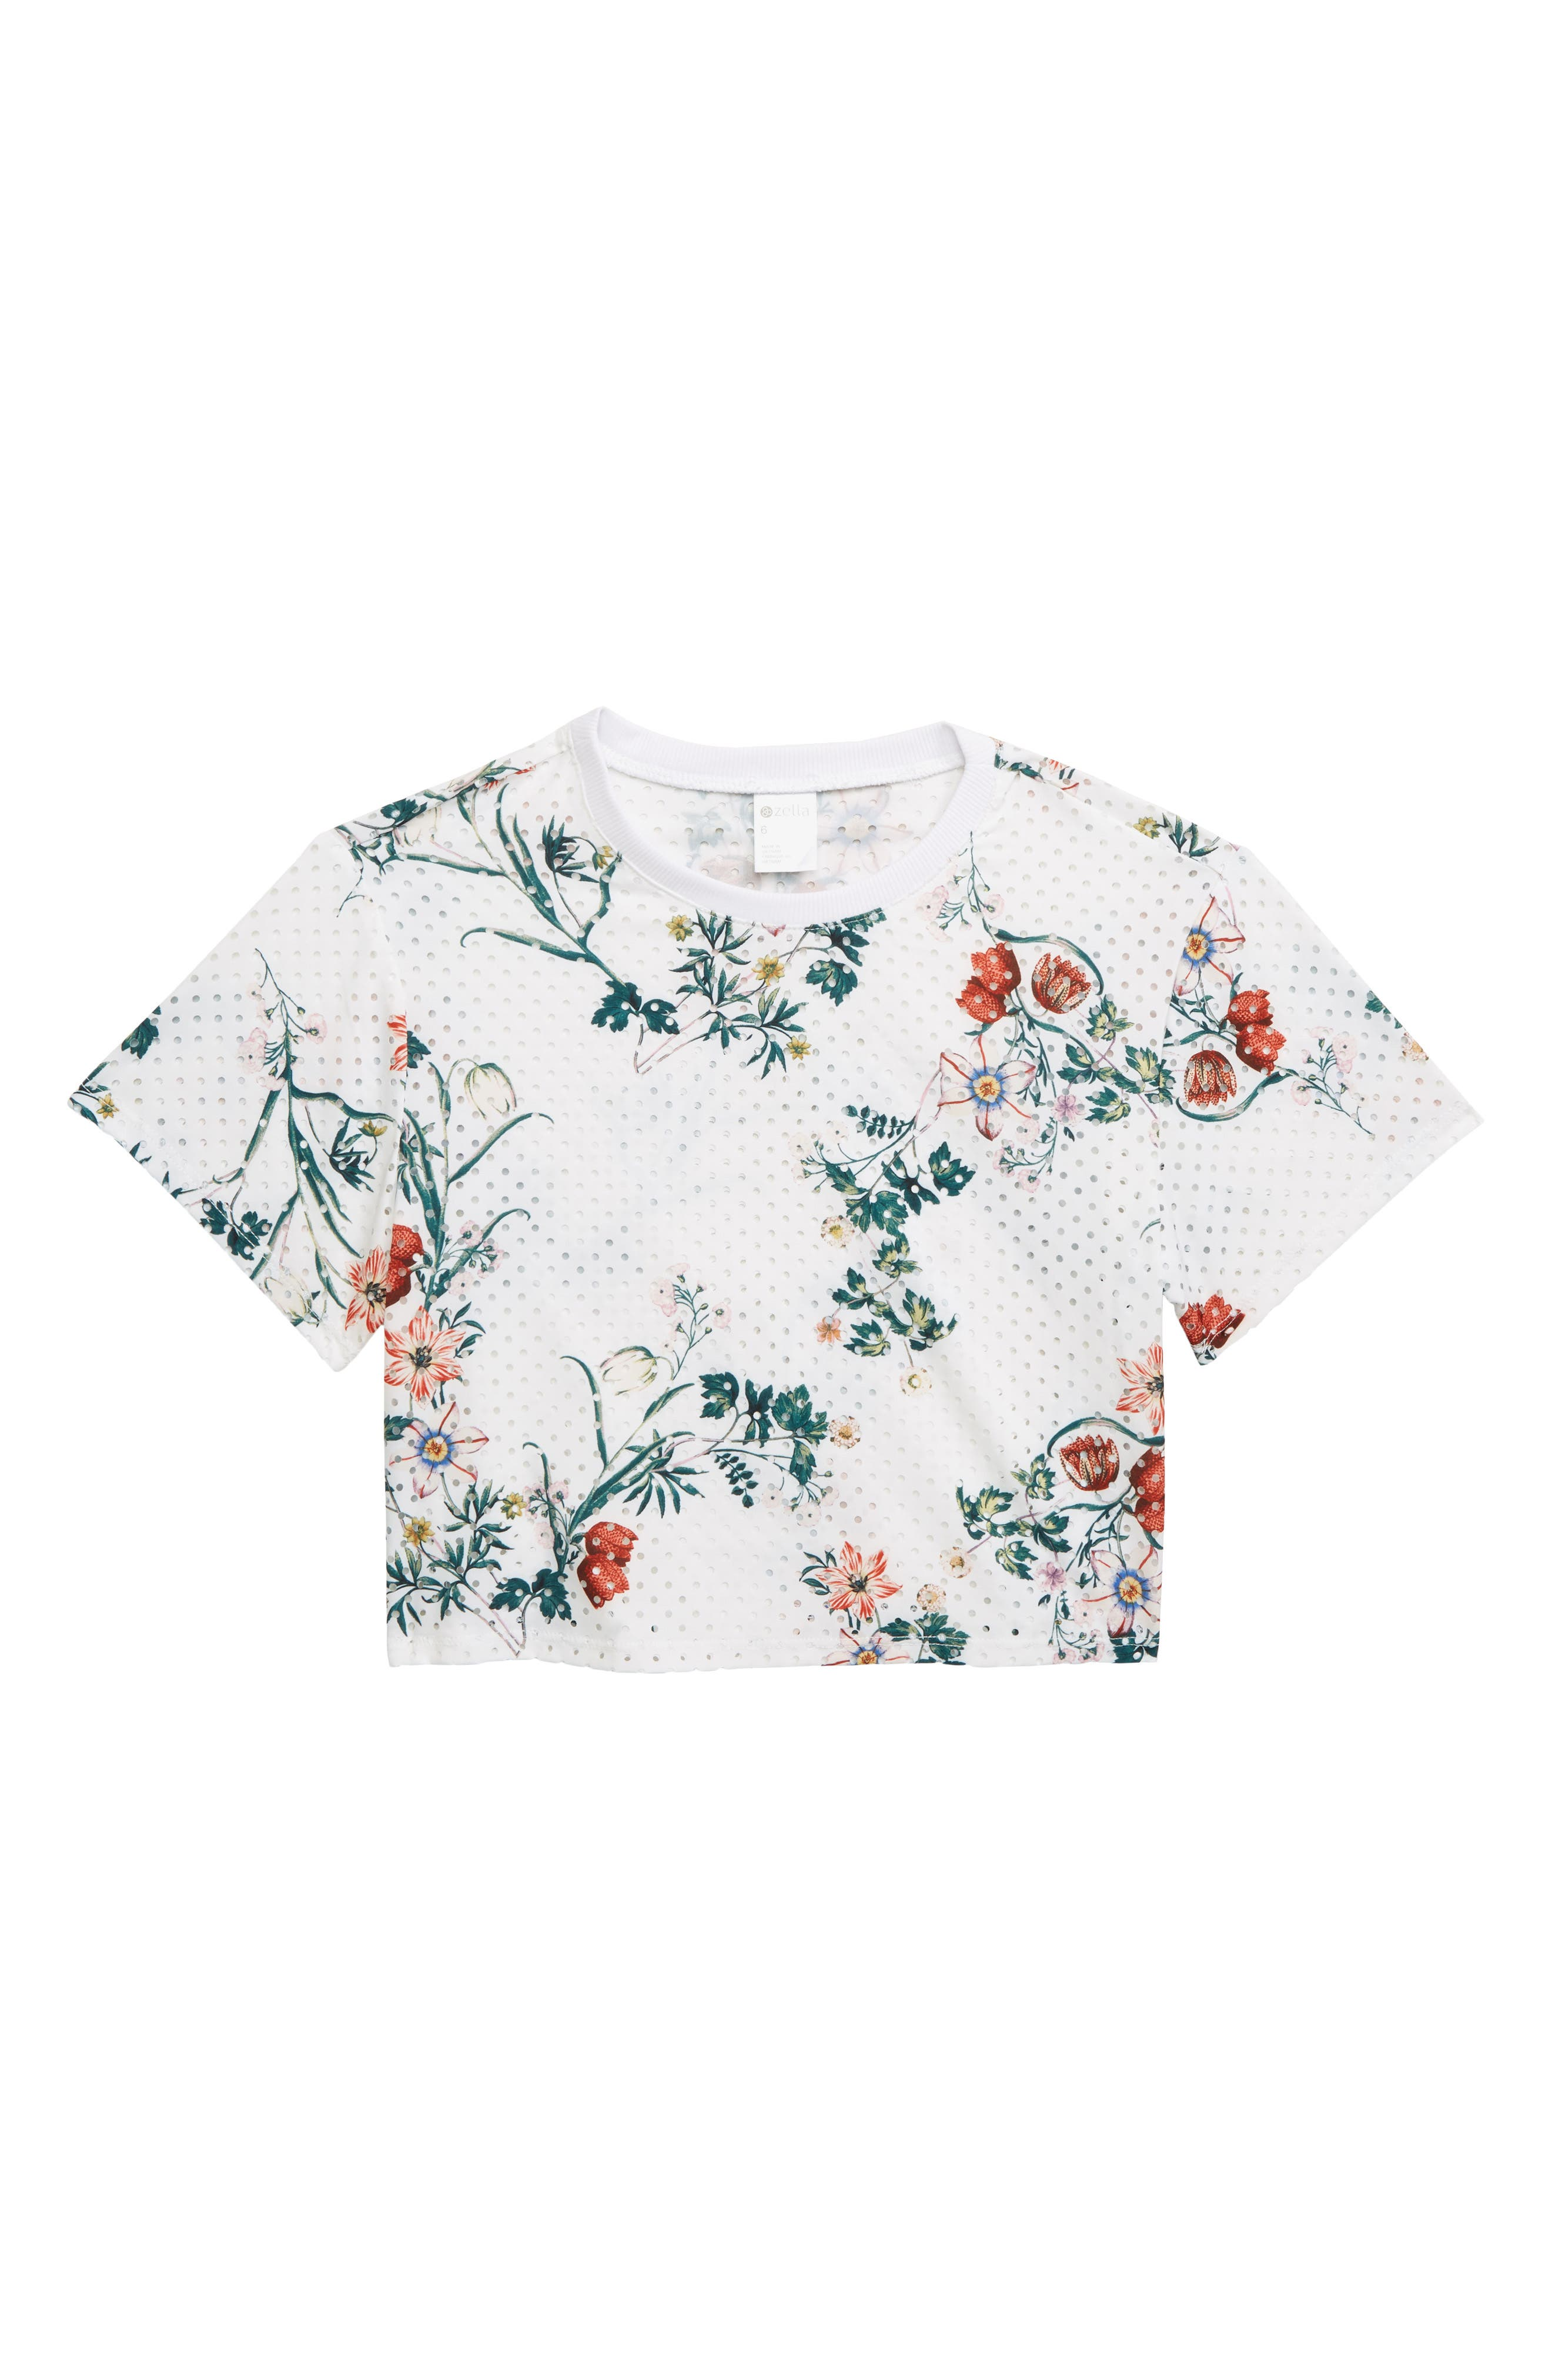 ZELLA GIRL Print Perforated Top, Main, color, WHITE WILD FLOWERS